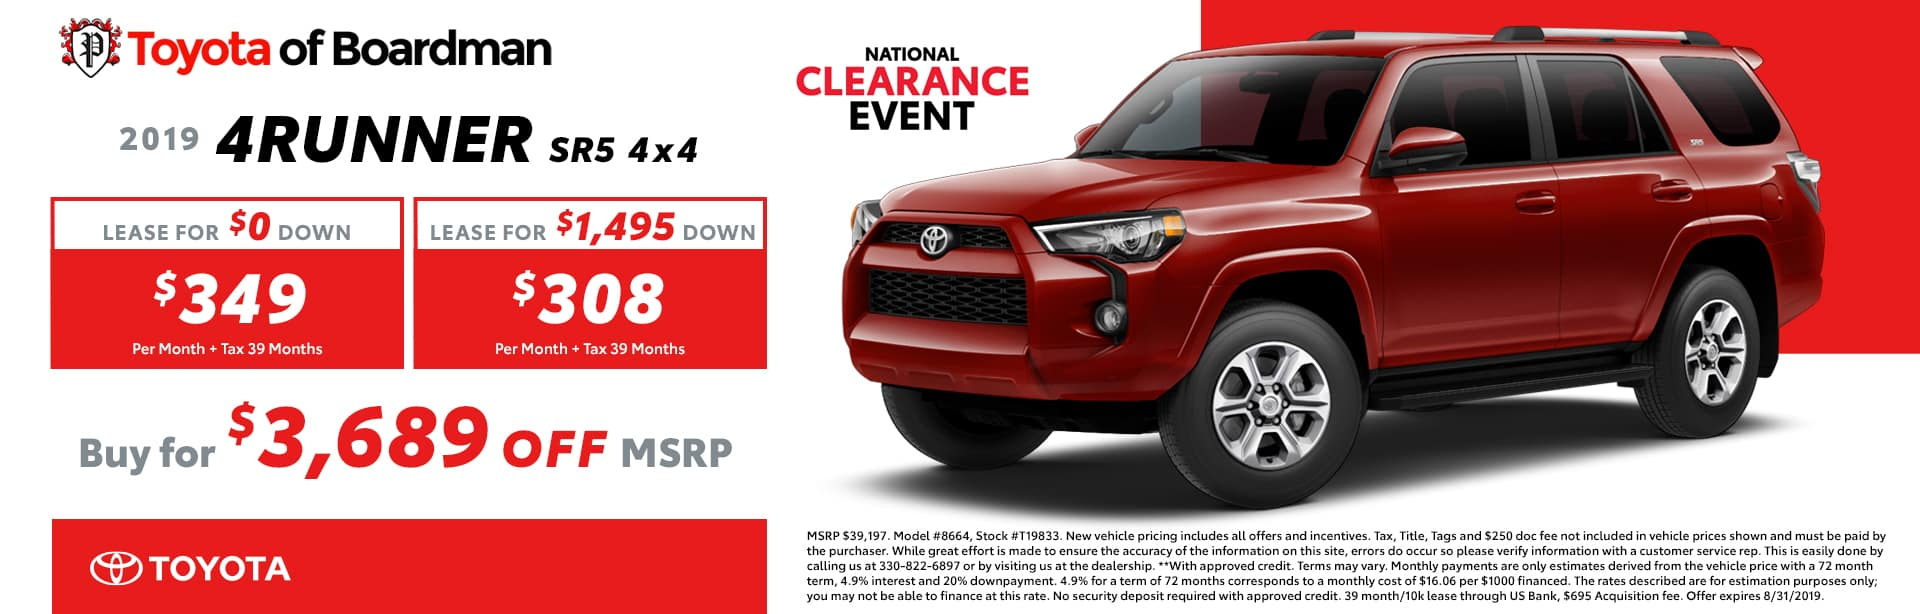 August special on the 2019 4Runner